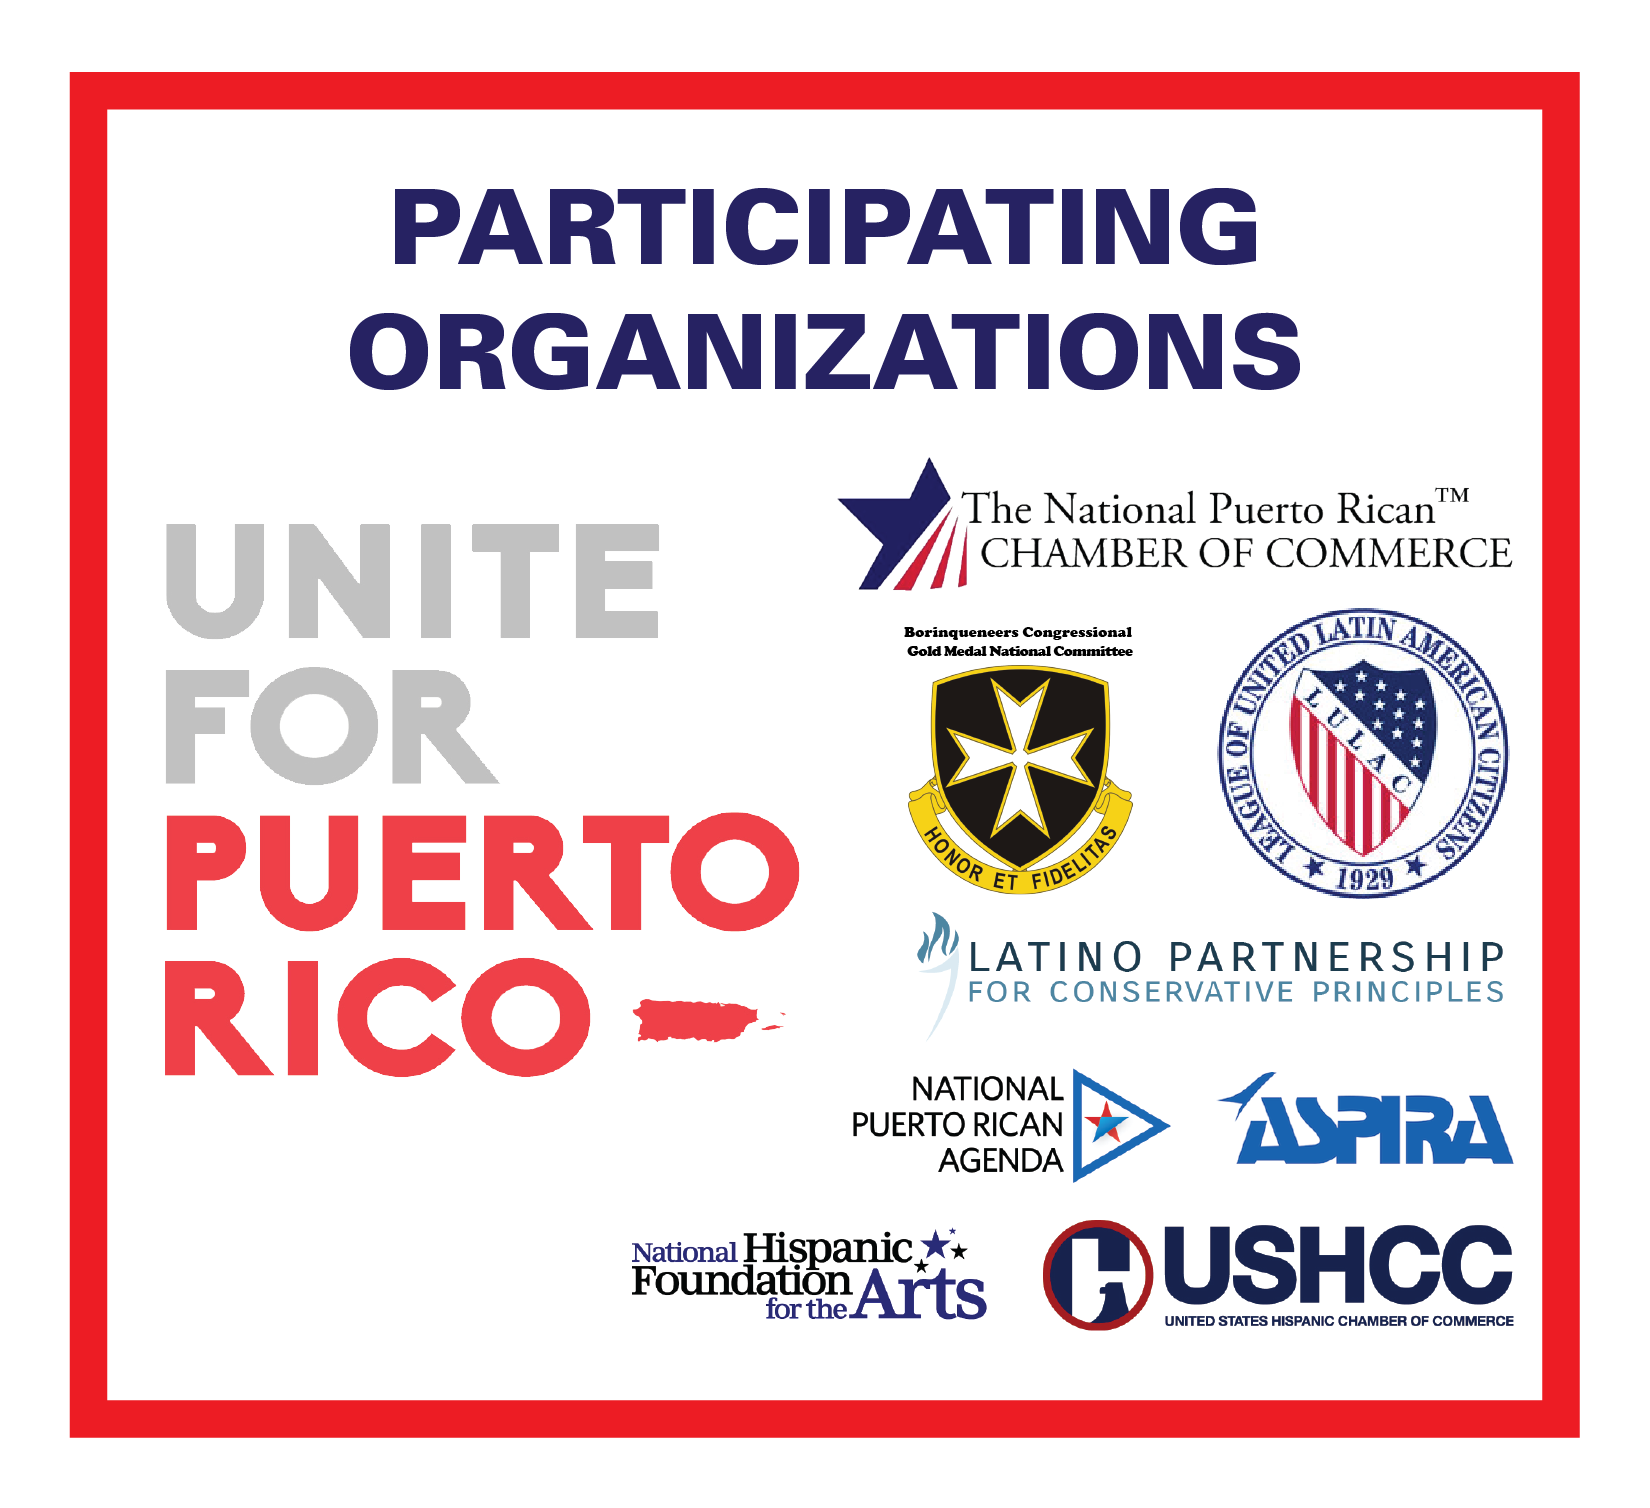 Unite_for_Puerto_Rico_Rally_Flyier.png